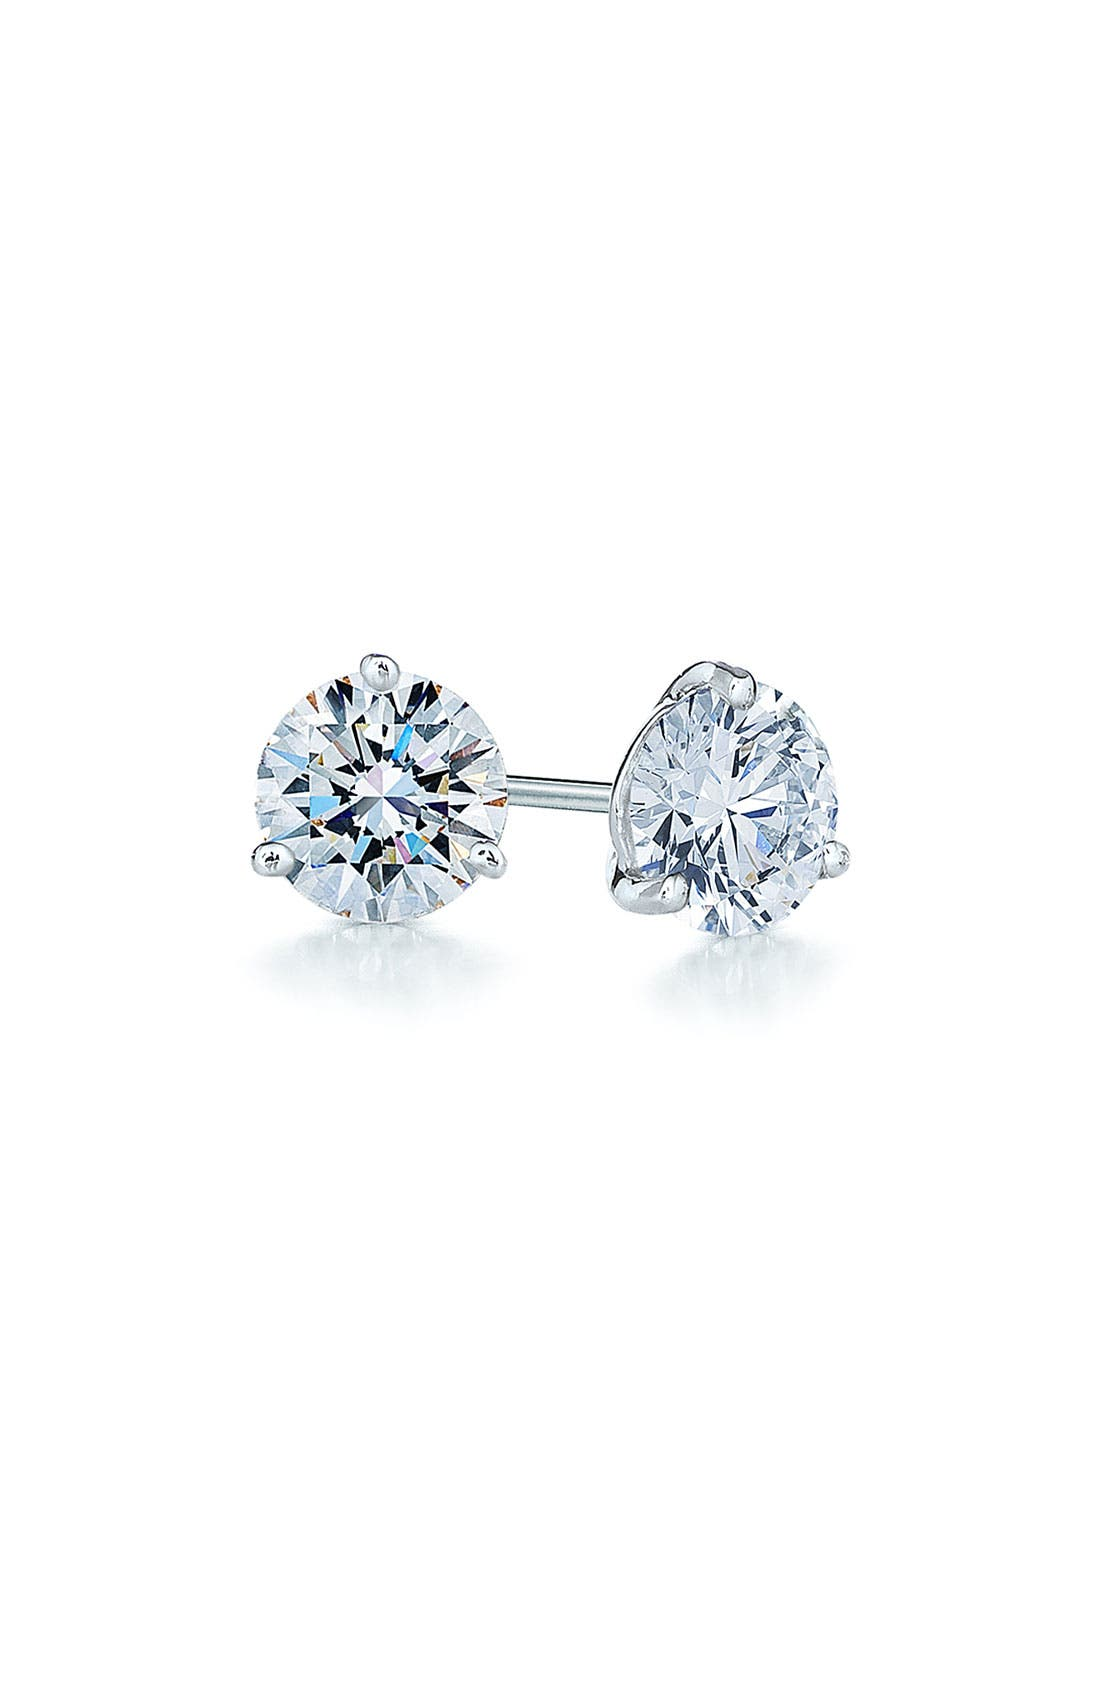 0.25ct tw Diamond & Platinum Stud Earrings,                         Main,                         color, PLATINUM